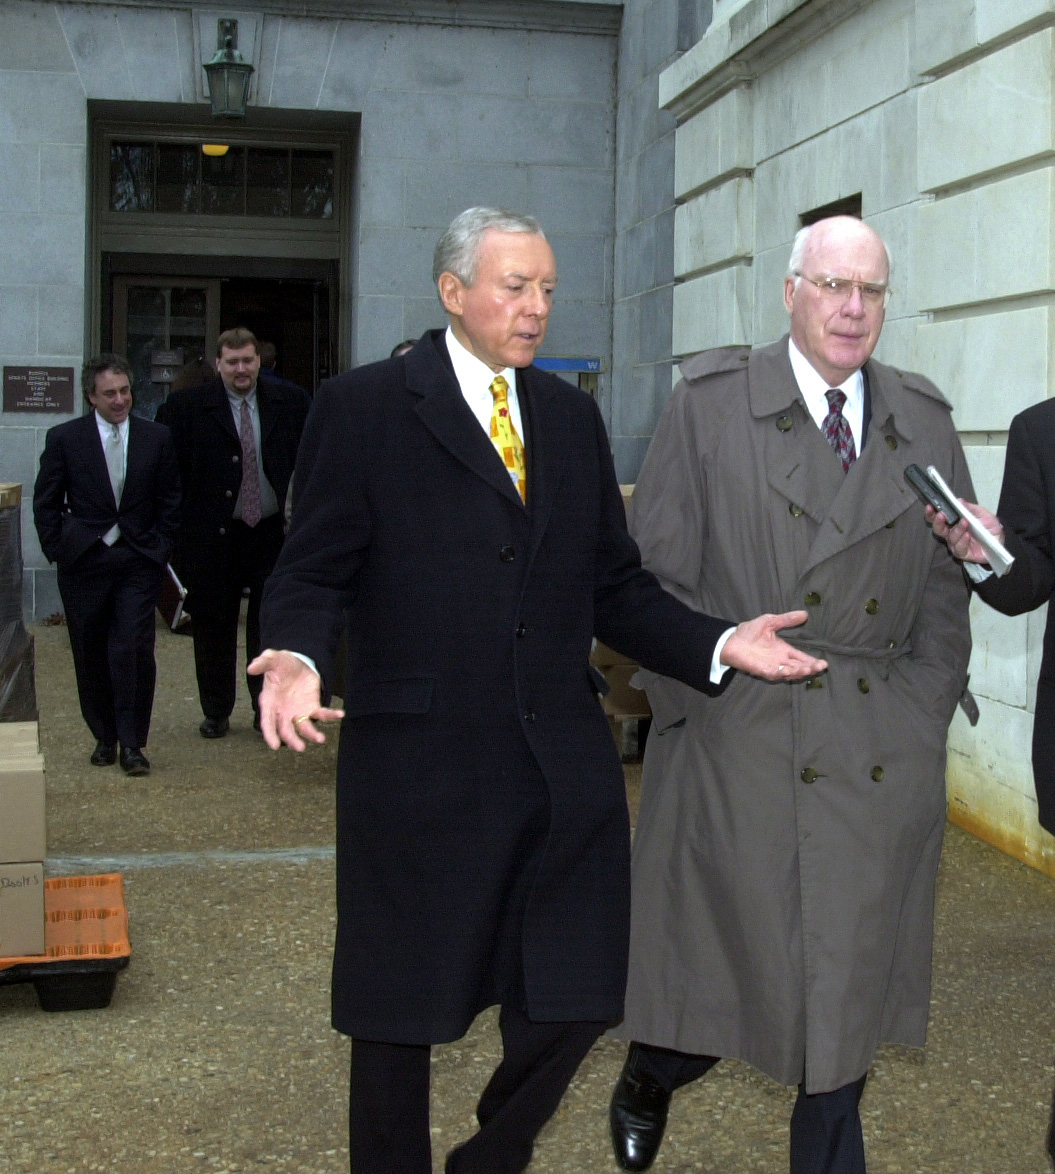 1Appeal120100 -- Orrin G. Hatch, R-Utah, and Patrick J. Leahy, D-Vt., walk from the Russell Senate Office Building to the Supreme Court were the Bush appeal of the Florida recount was underway. Senators Hatch and Leahy were on there way to do T.V. interviews.